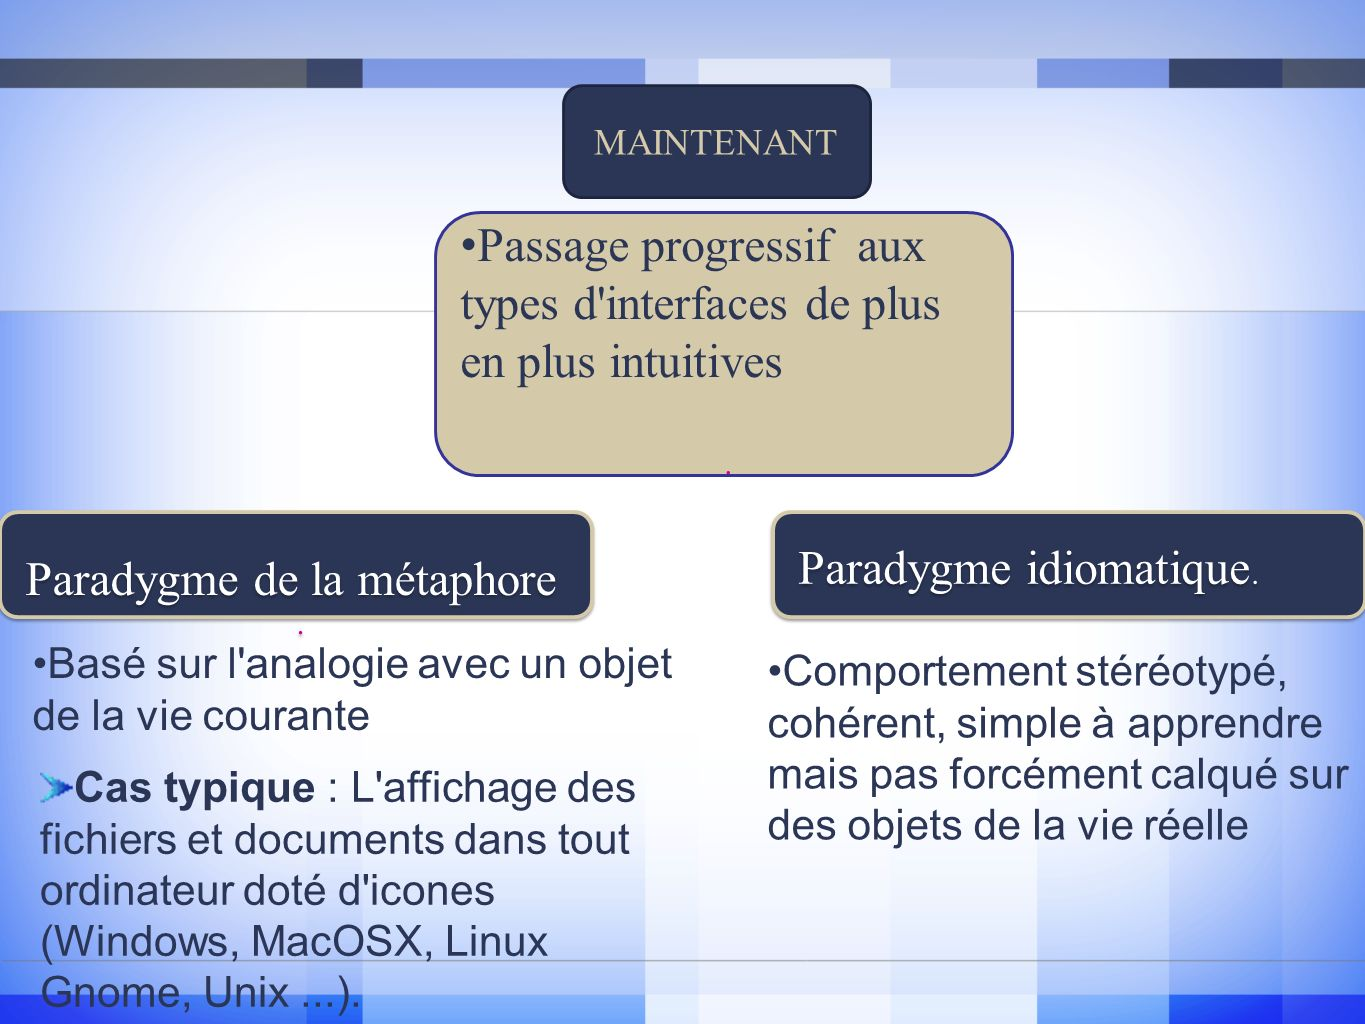 Passage progressif aux types d interfaces de plus en plus intuitives